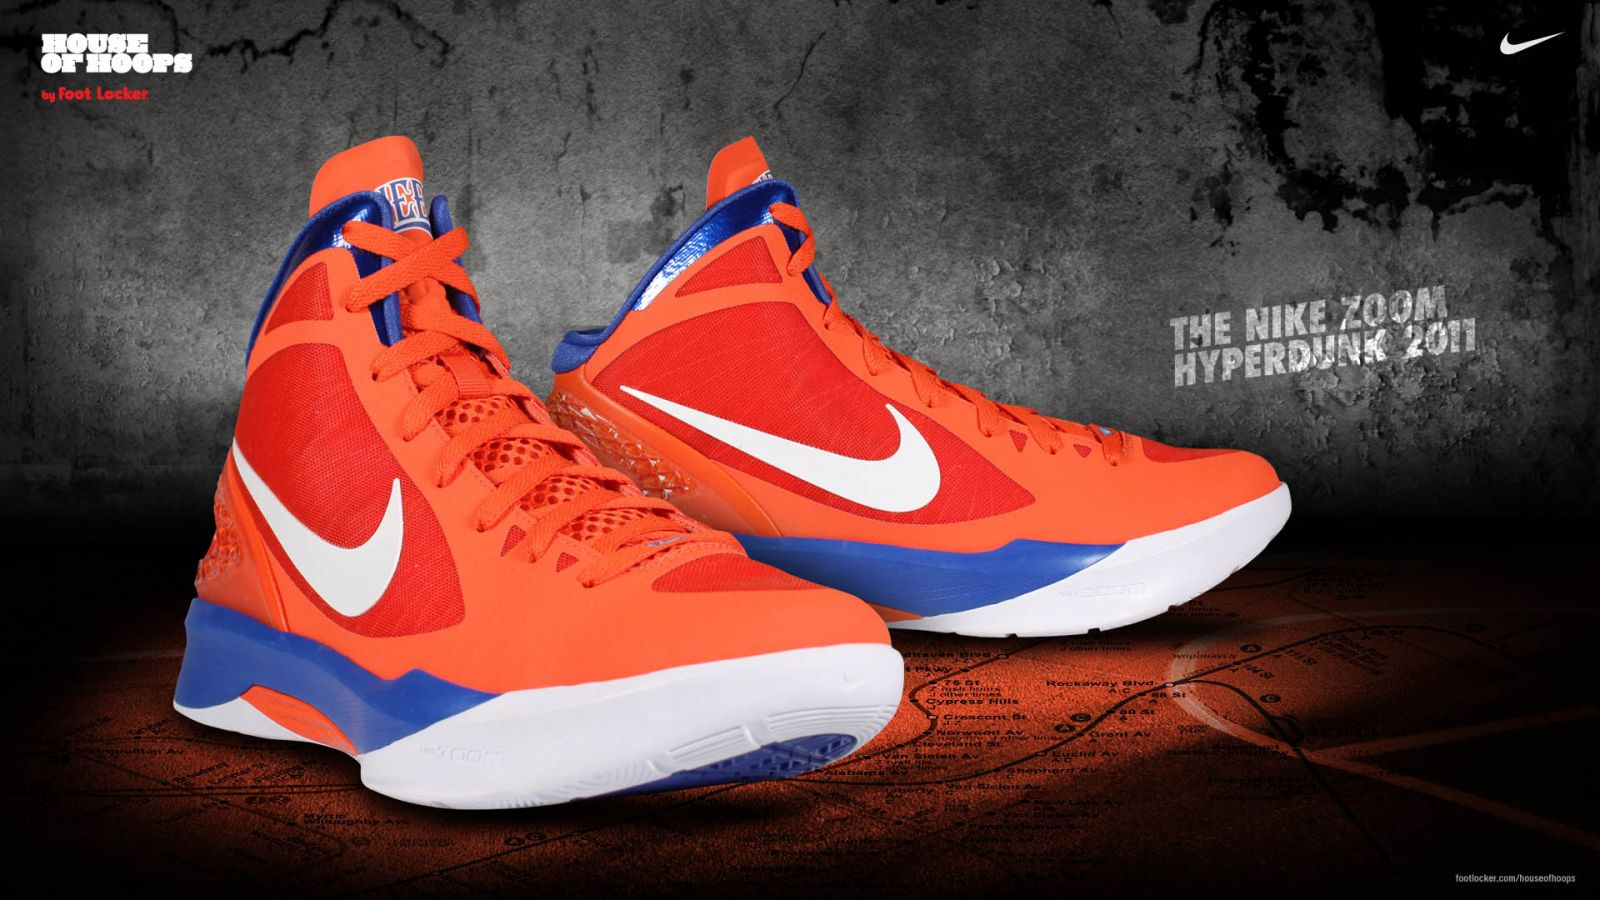 Nike Zoom Hyperdunk 2011 Low 'USA' Sample